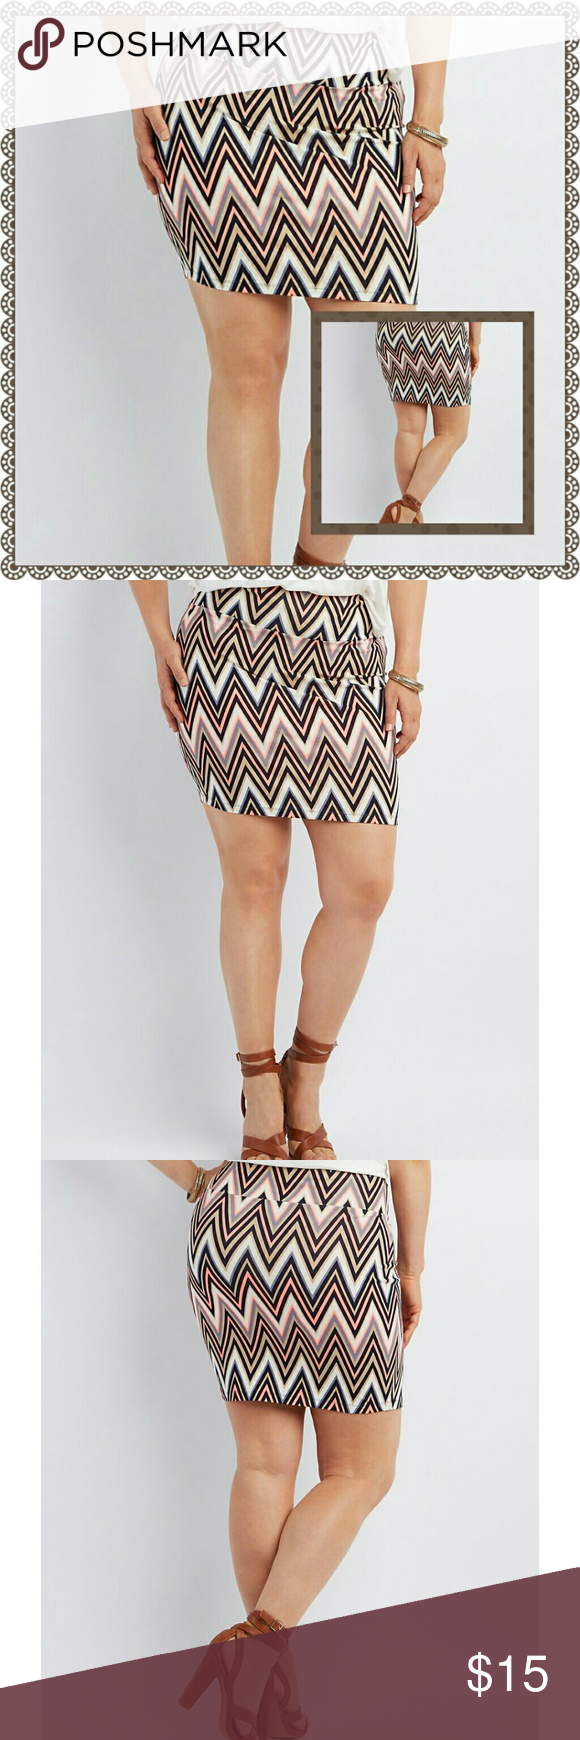 ?? LISTING  PLUS SIZE PRINTED MINI SKIRT STRETCH COTTON FORMS A COOL BODYCON MINI SKIRT DECORATED WITH TRENDY CHEVRON STRIPES ! WIDE WAISTBAND MAKES IT CUTE AND COMFY - PERFECT FOR PAIRING WITH TUCKED IN SHIRT OR CROP TOP. Skirts